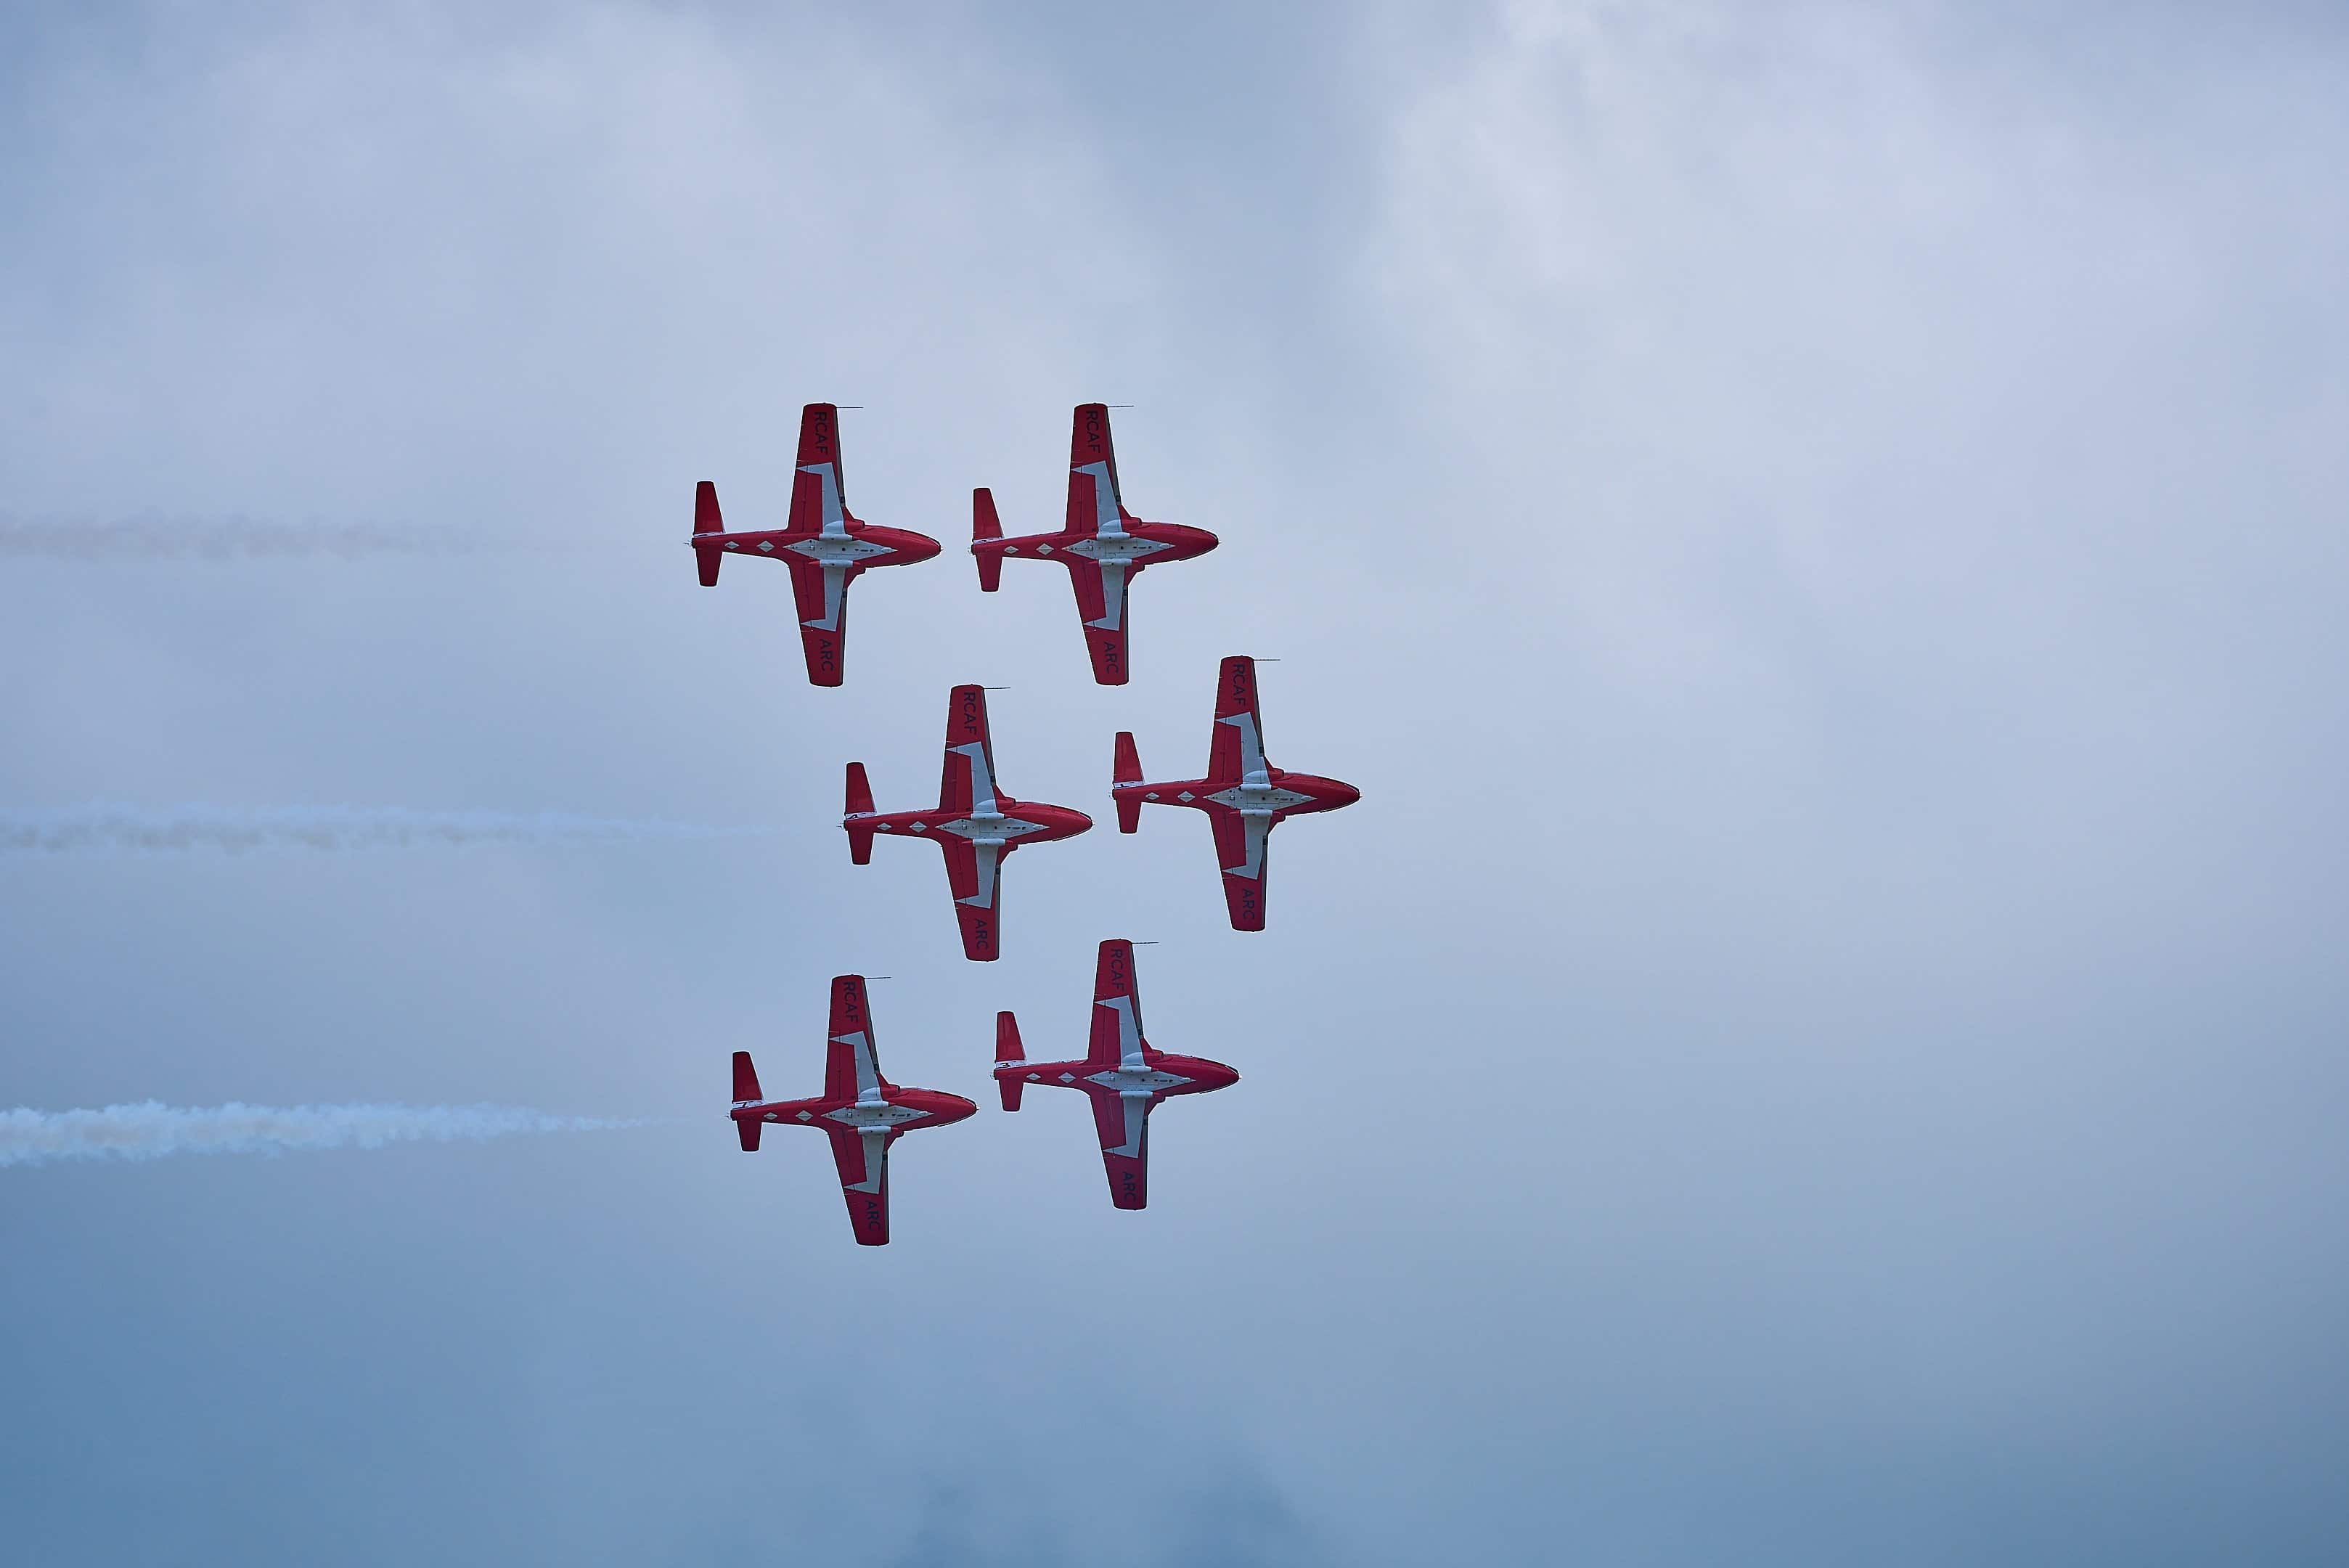 Abbotsford Airshow : 2017-08-13 : Canadian Forces Snowbirds